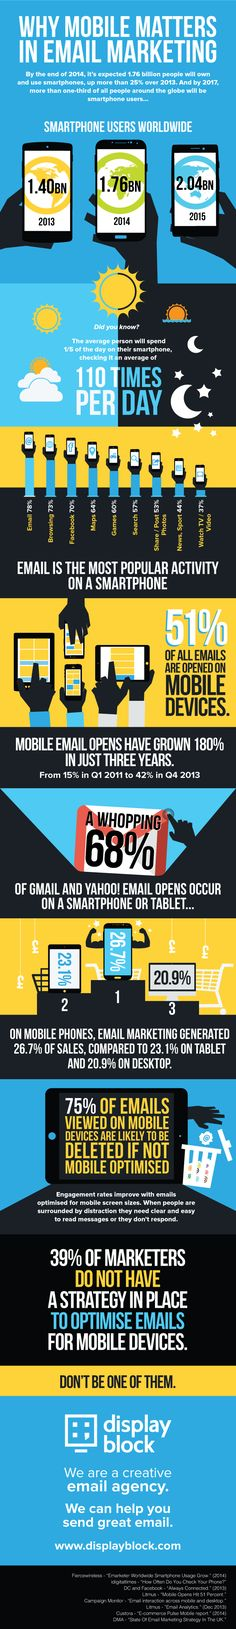 #Mobile #Email: Why Mobile Matters in Email Marketing